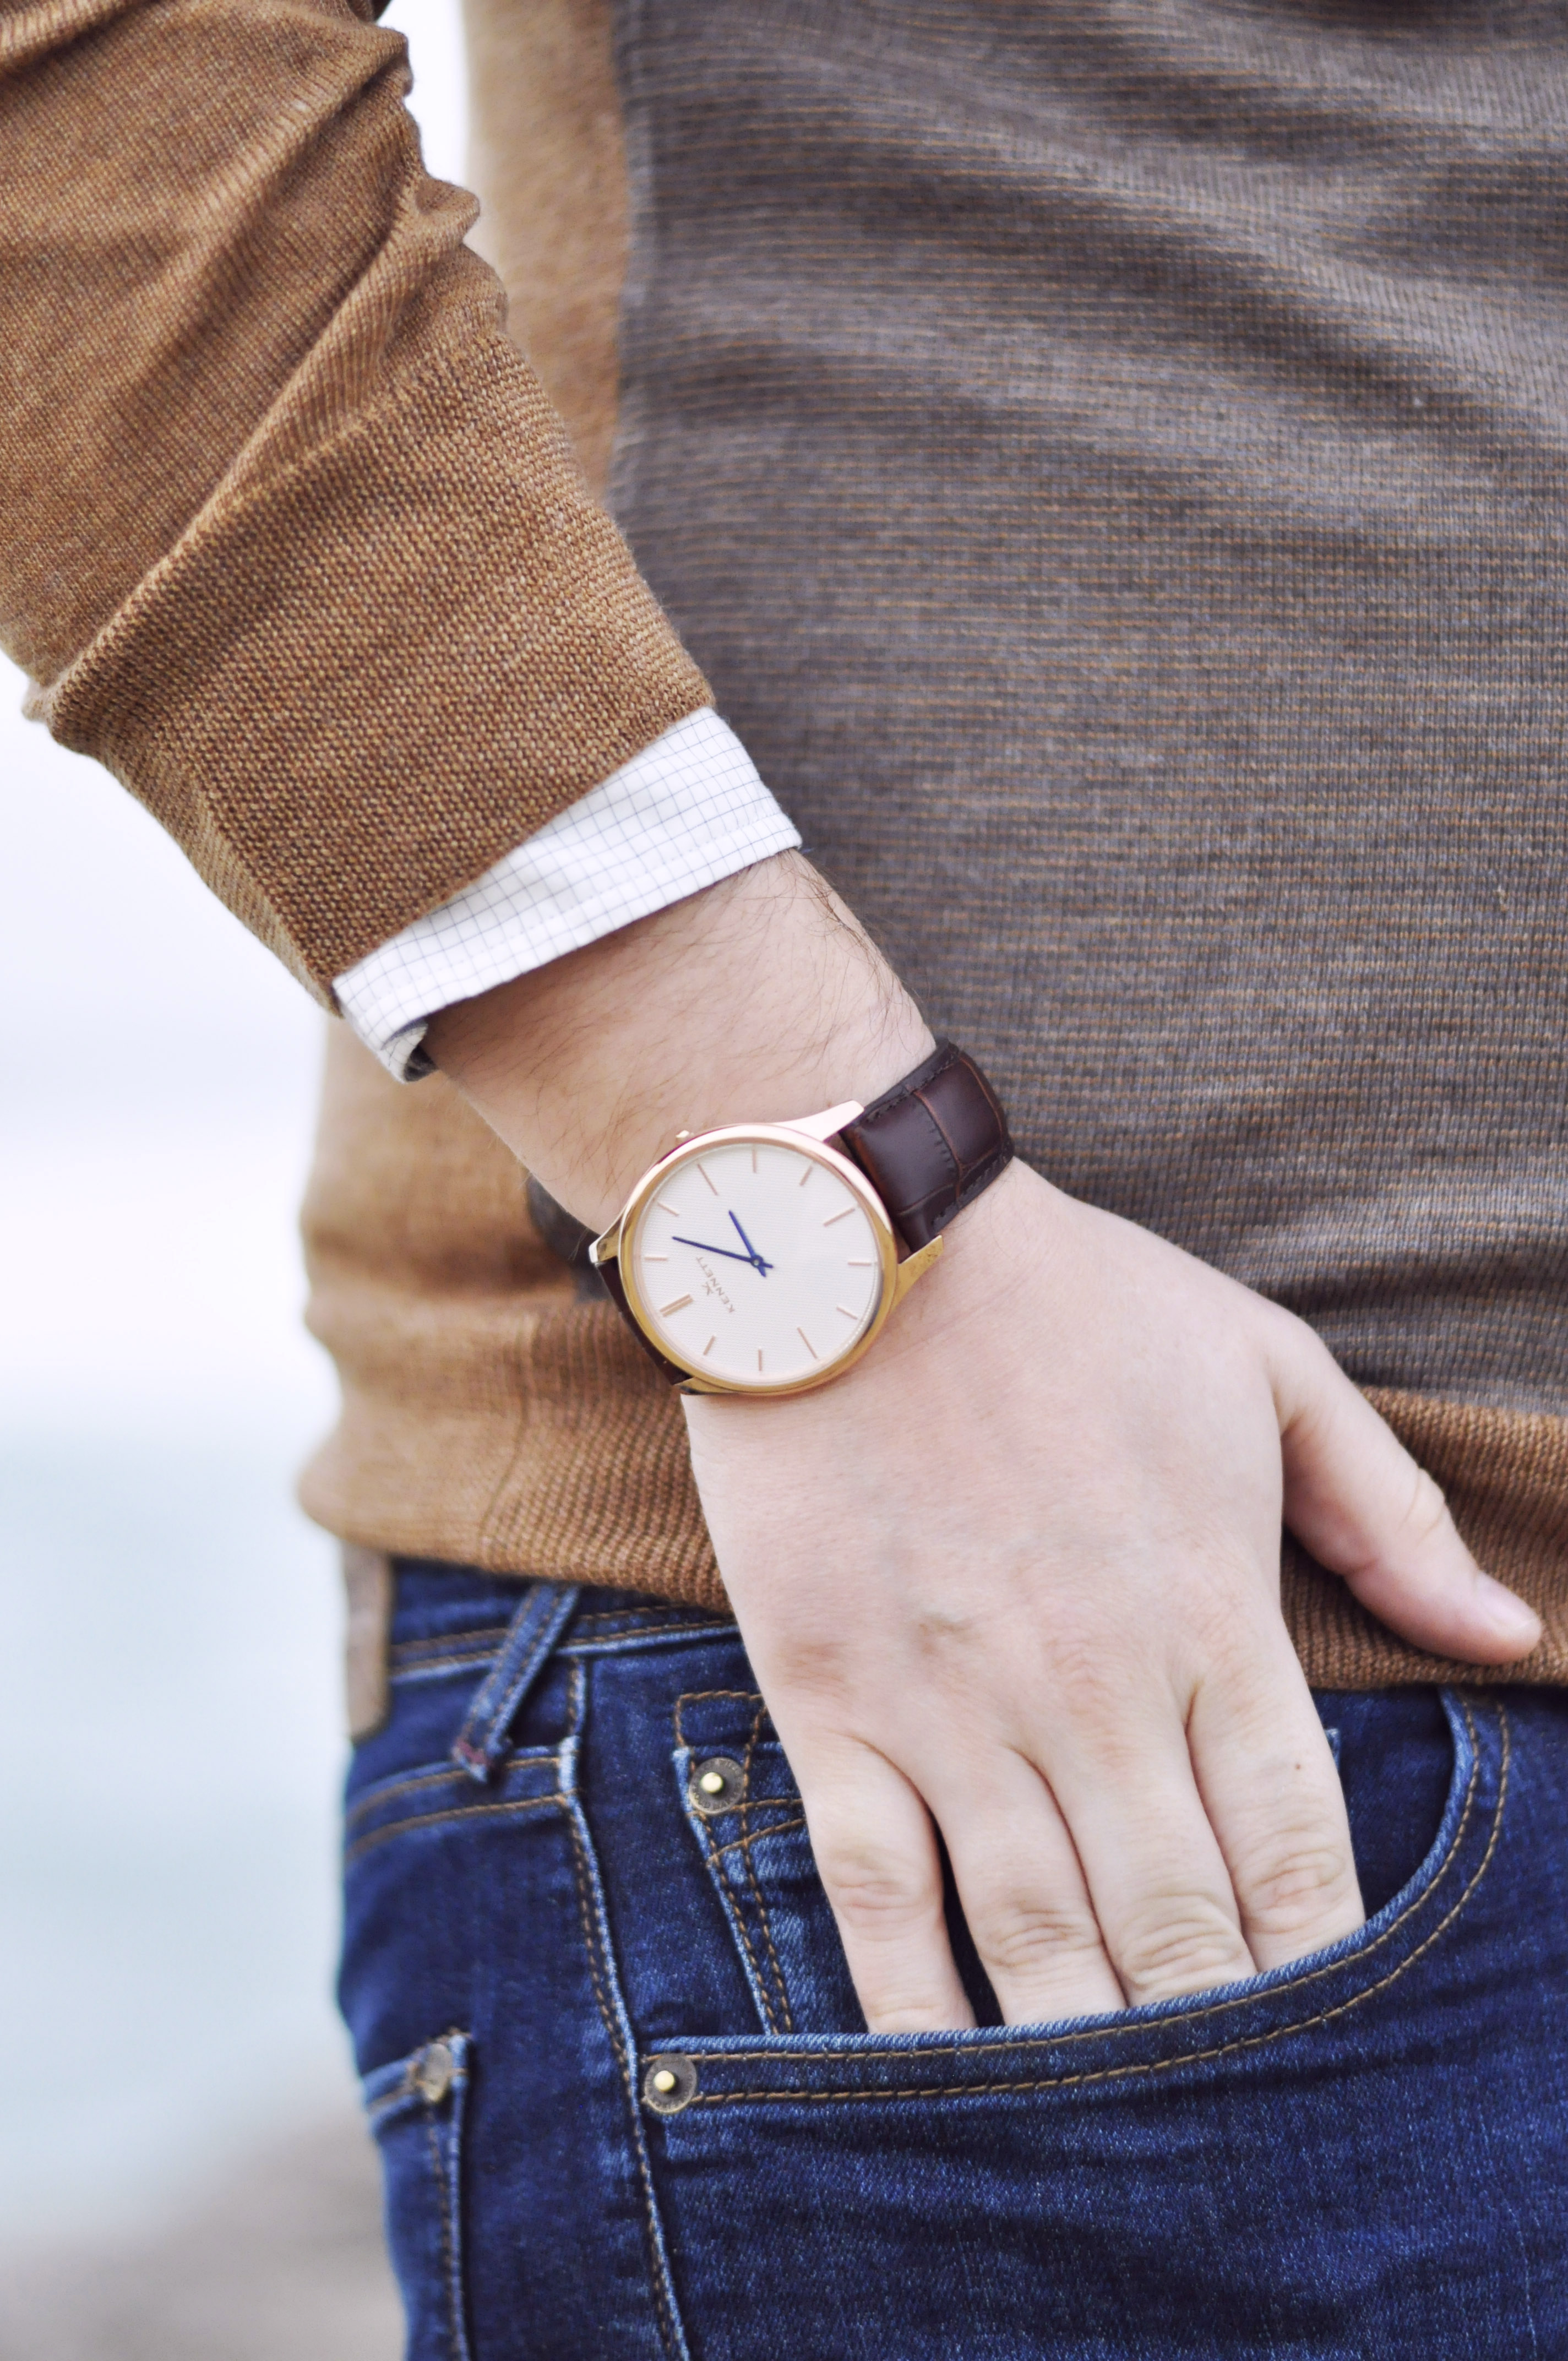 his-watch2